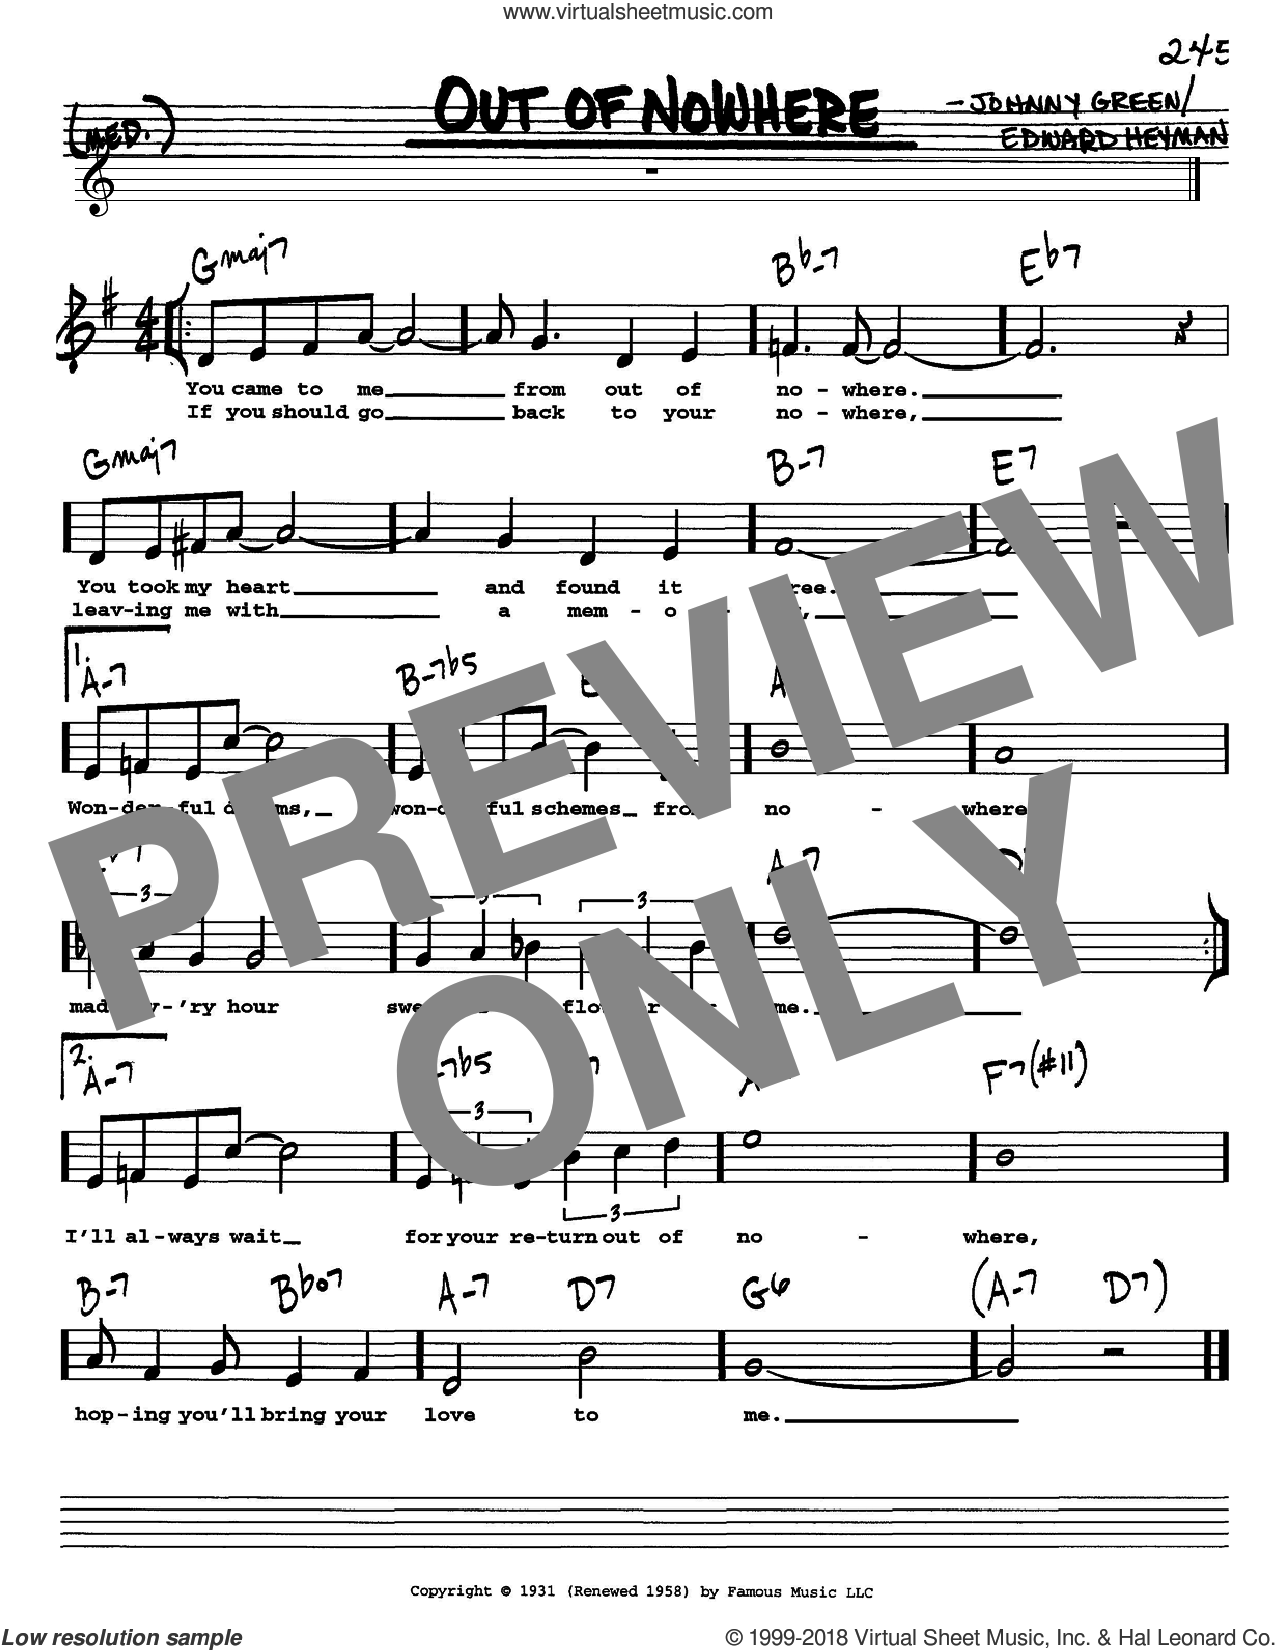 Out Of Nowhere sheet music for voice and other instruments  by Edward Heyman and Johnny Green, intermediate skill level